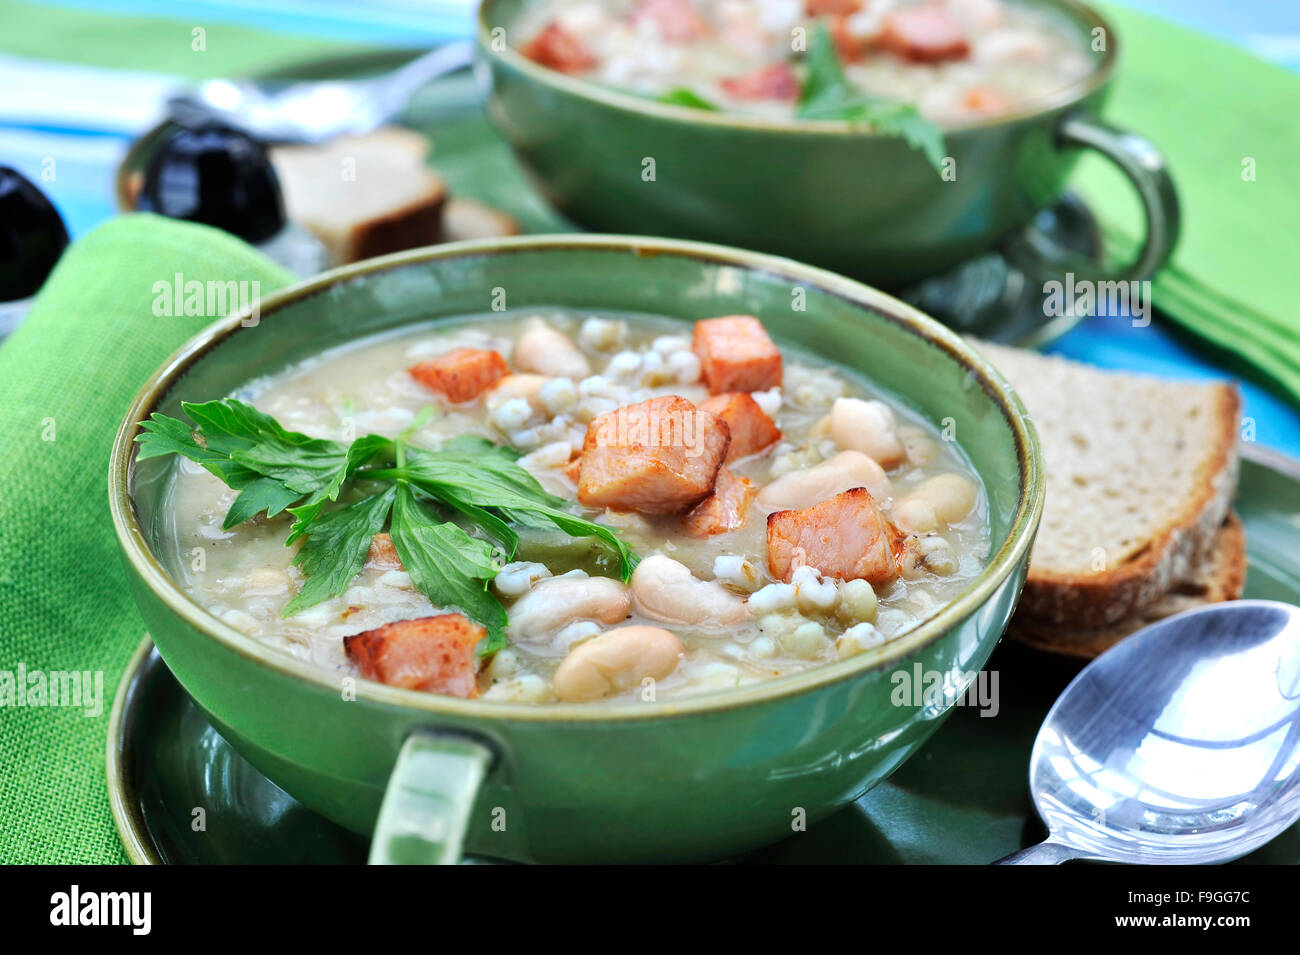 Groat Soup with Beans - Stock Image